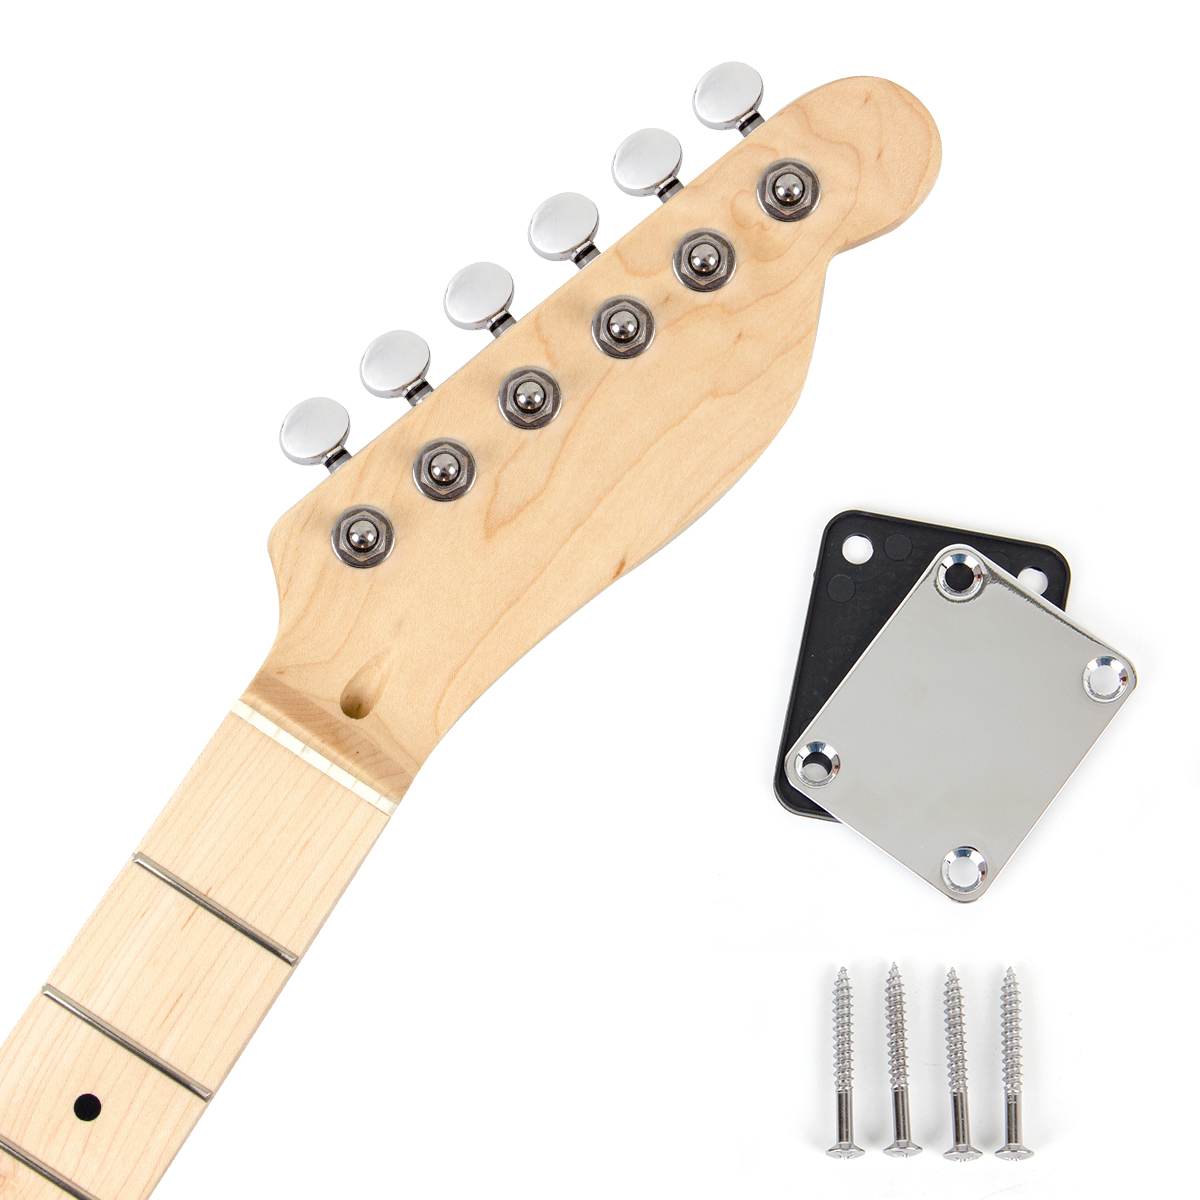 Kmsie Electric Guitar Neck with Tuner Neck Plate...